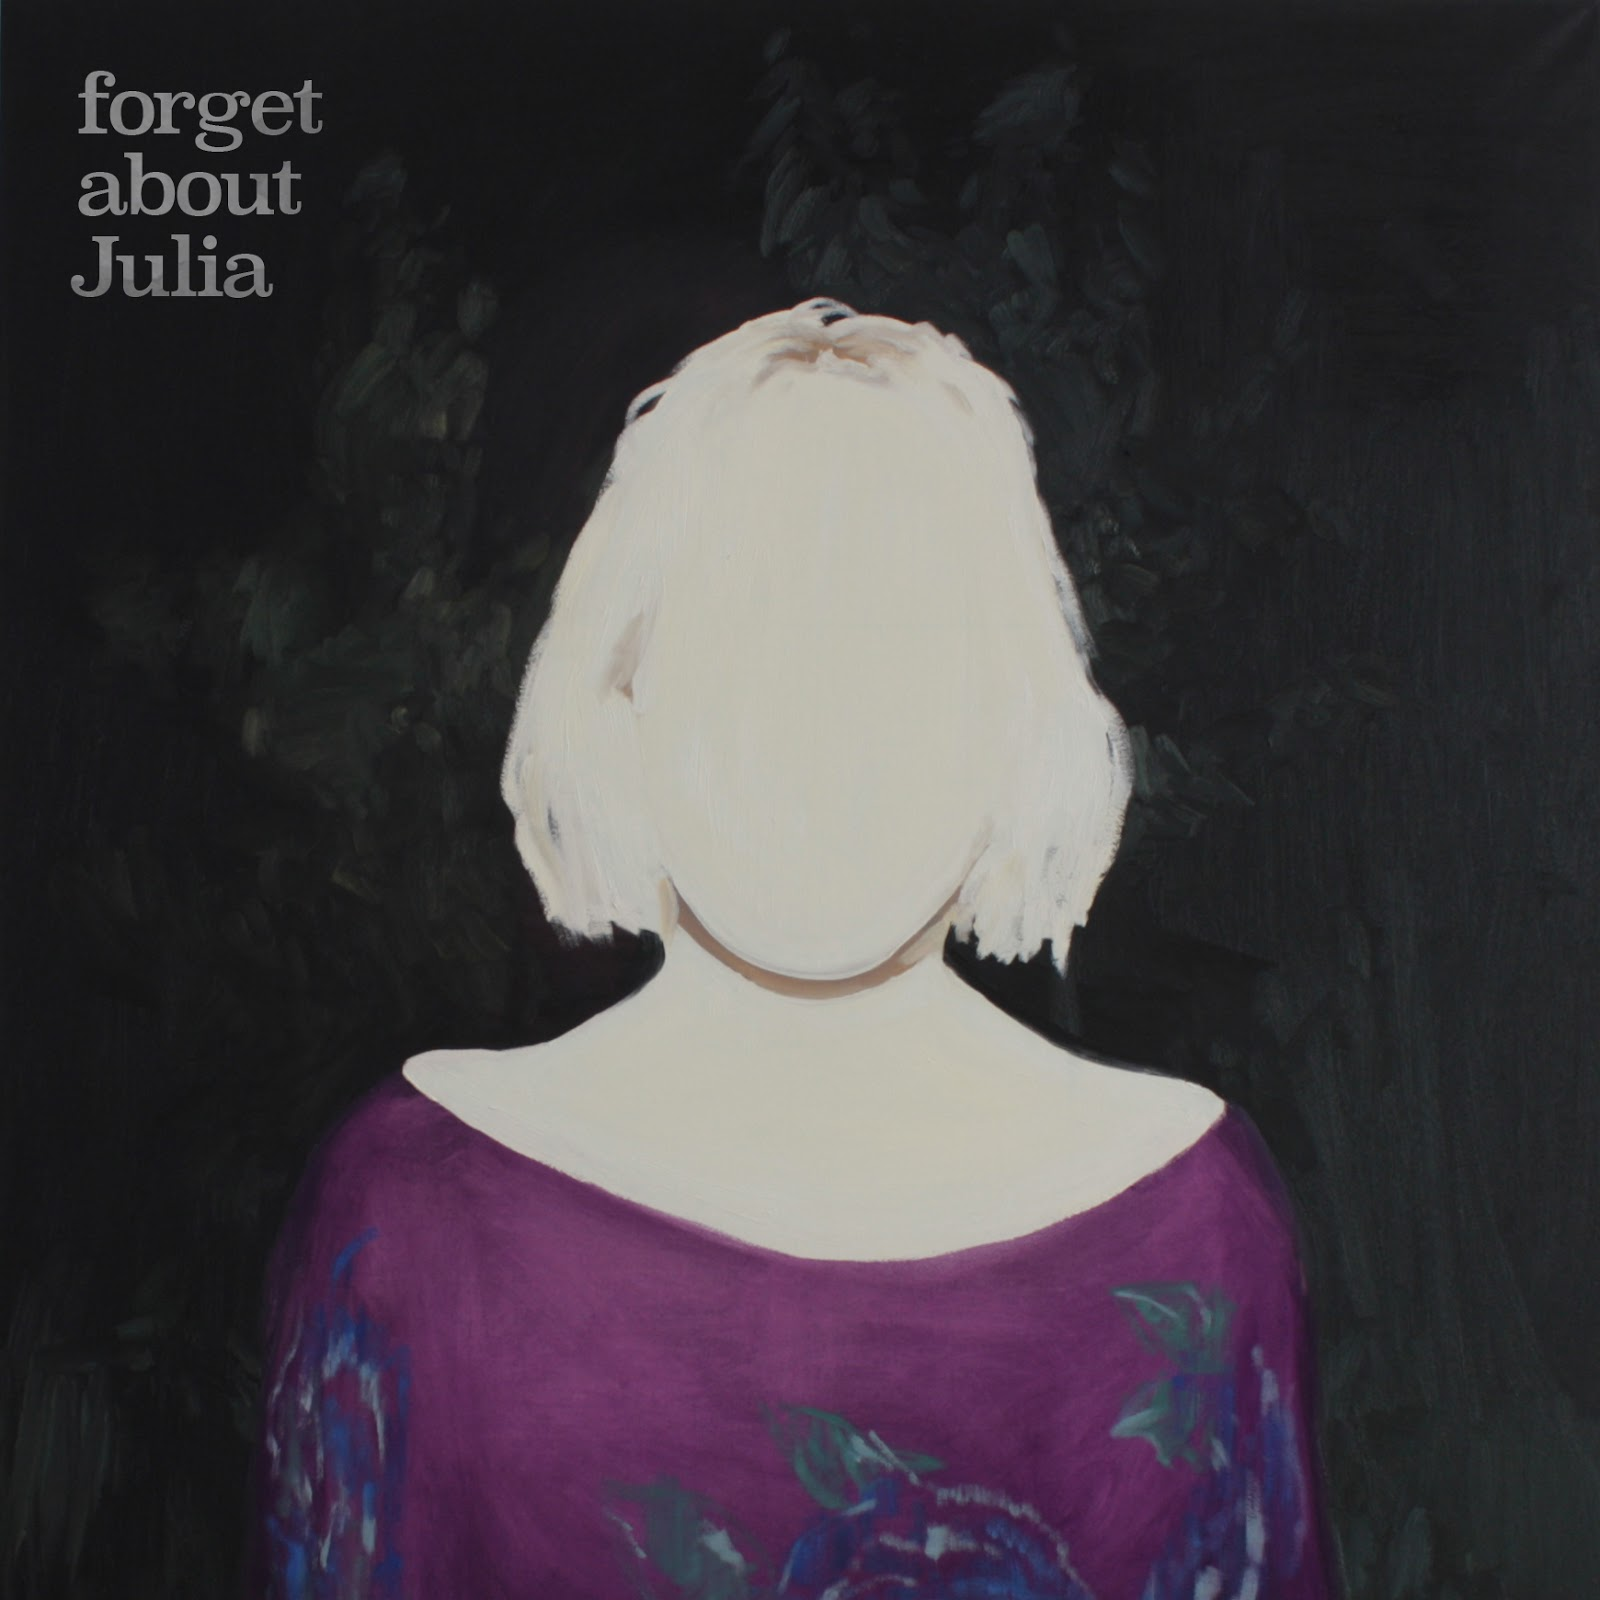 Forget about Julia: Forget about Julia